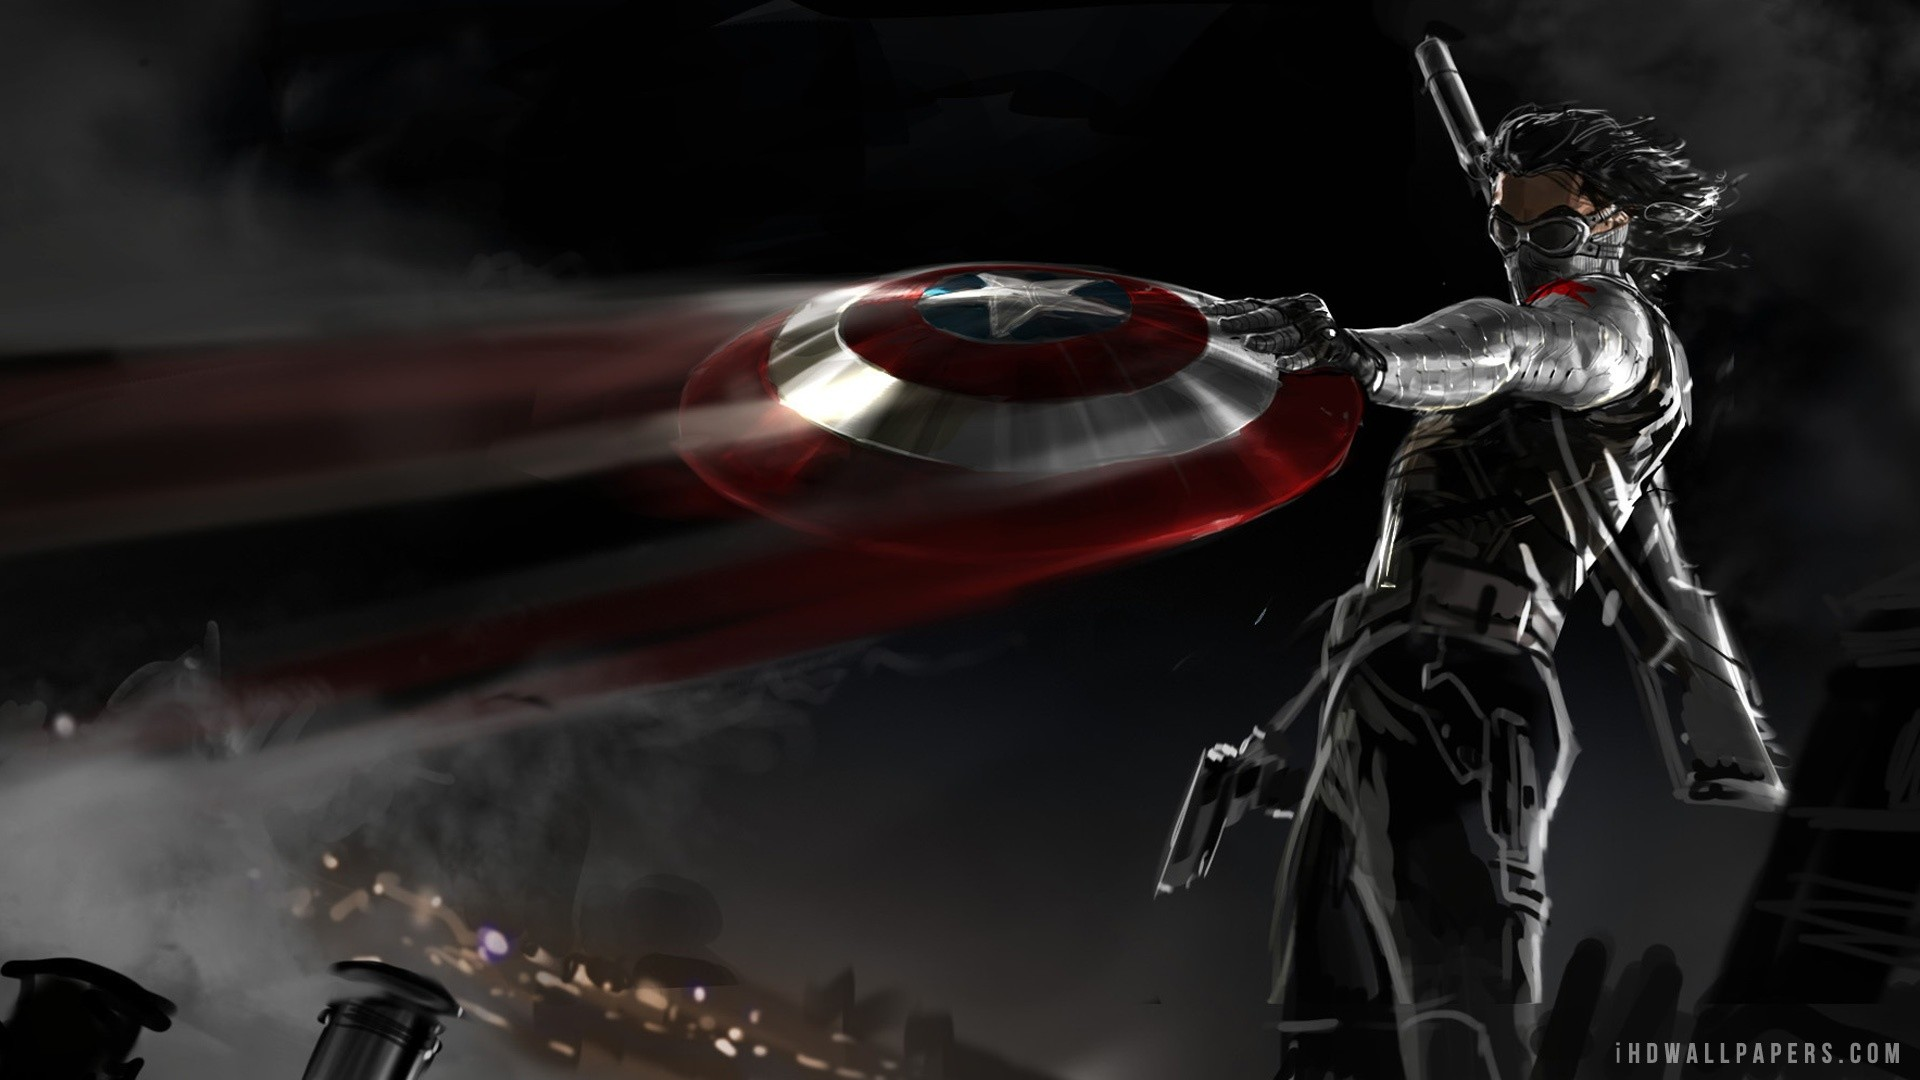 1920x1080 79 Captain America: The Winter Soldier HD Wallpapers | Backgrounds -  Wallpaper Abyss